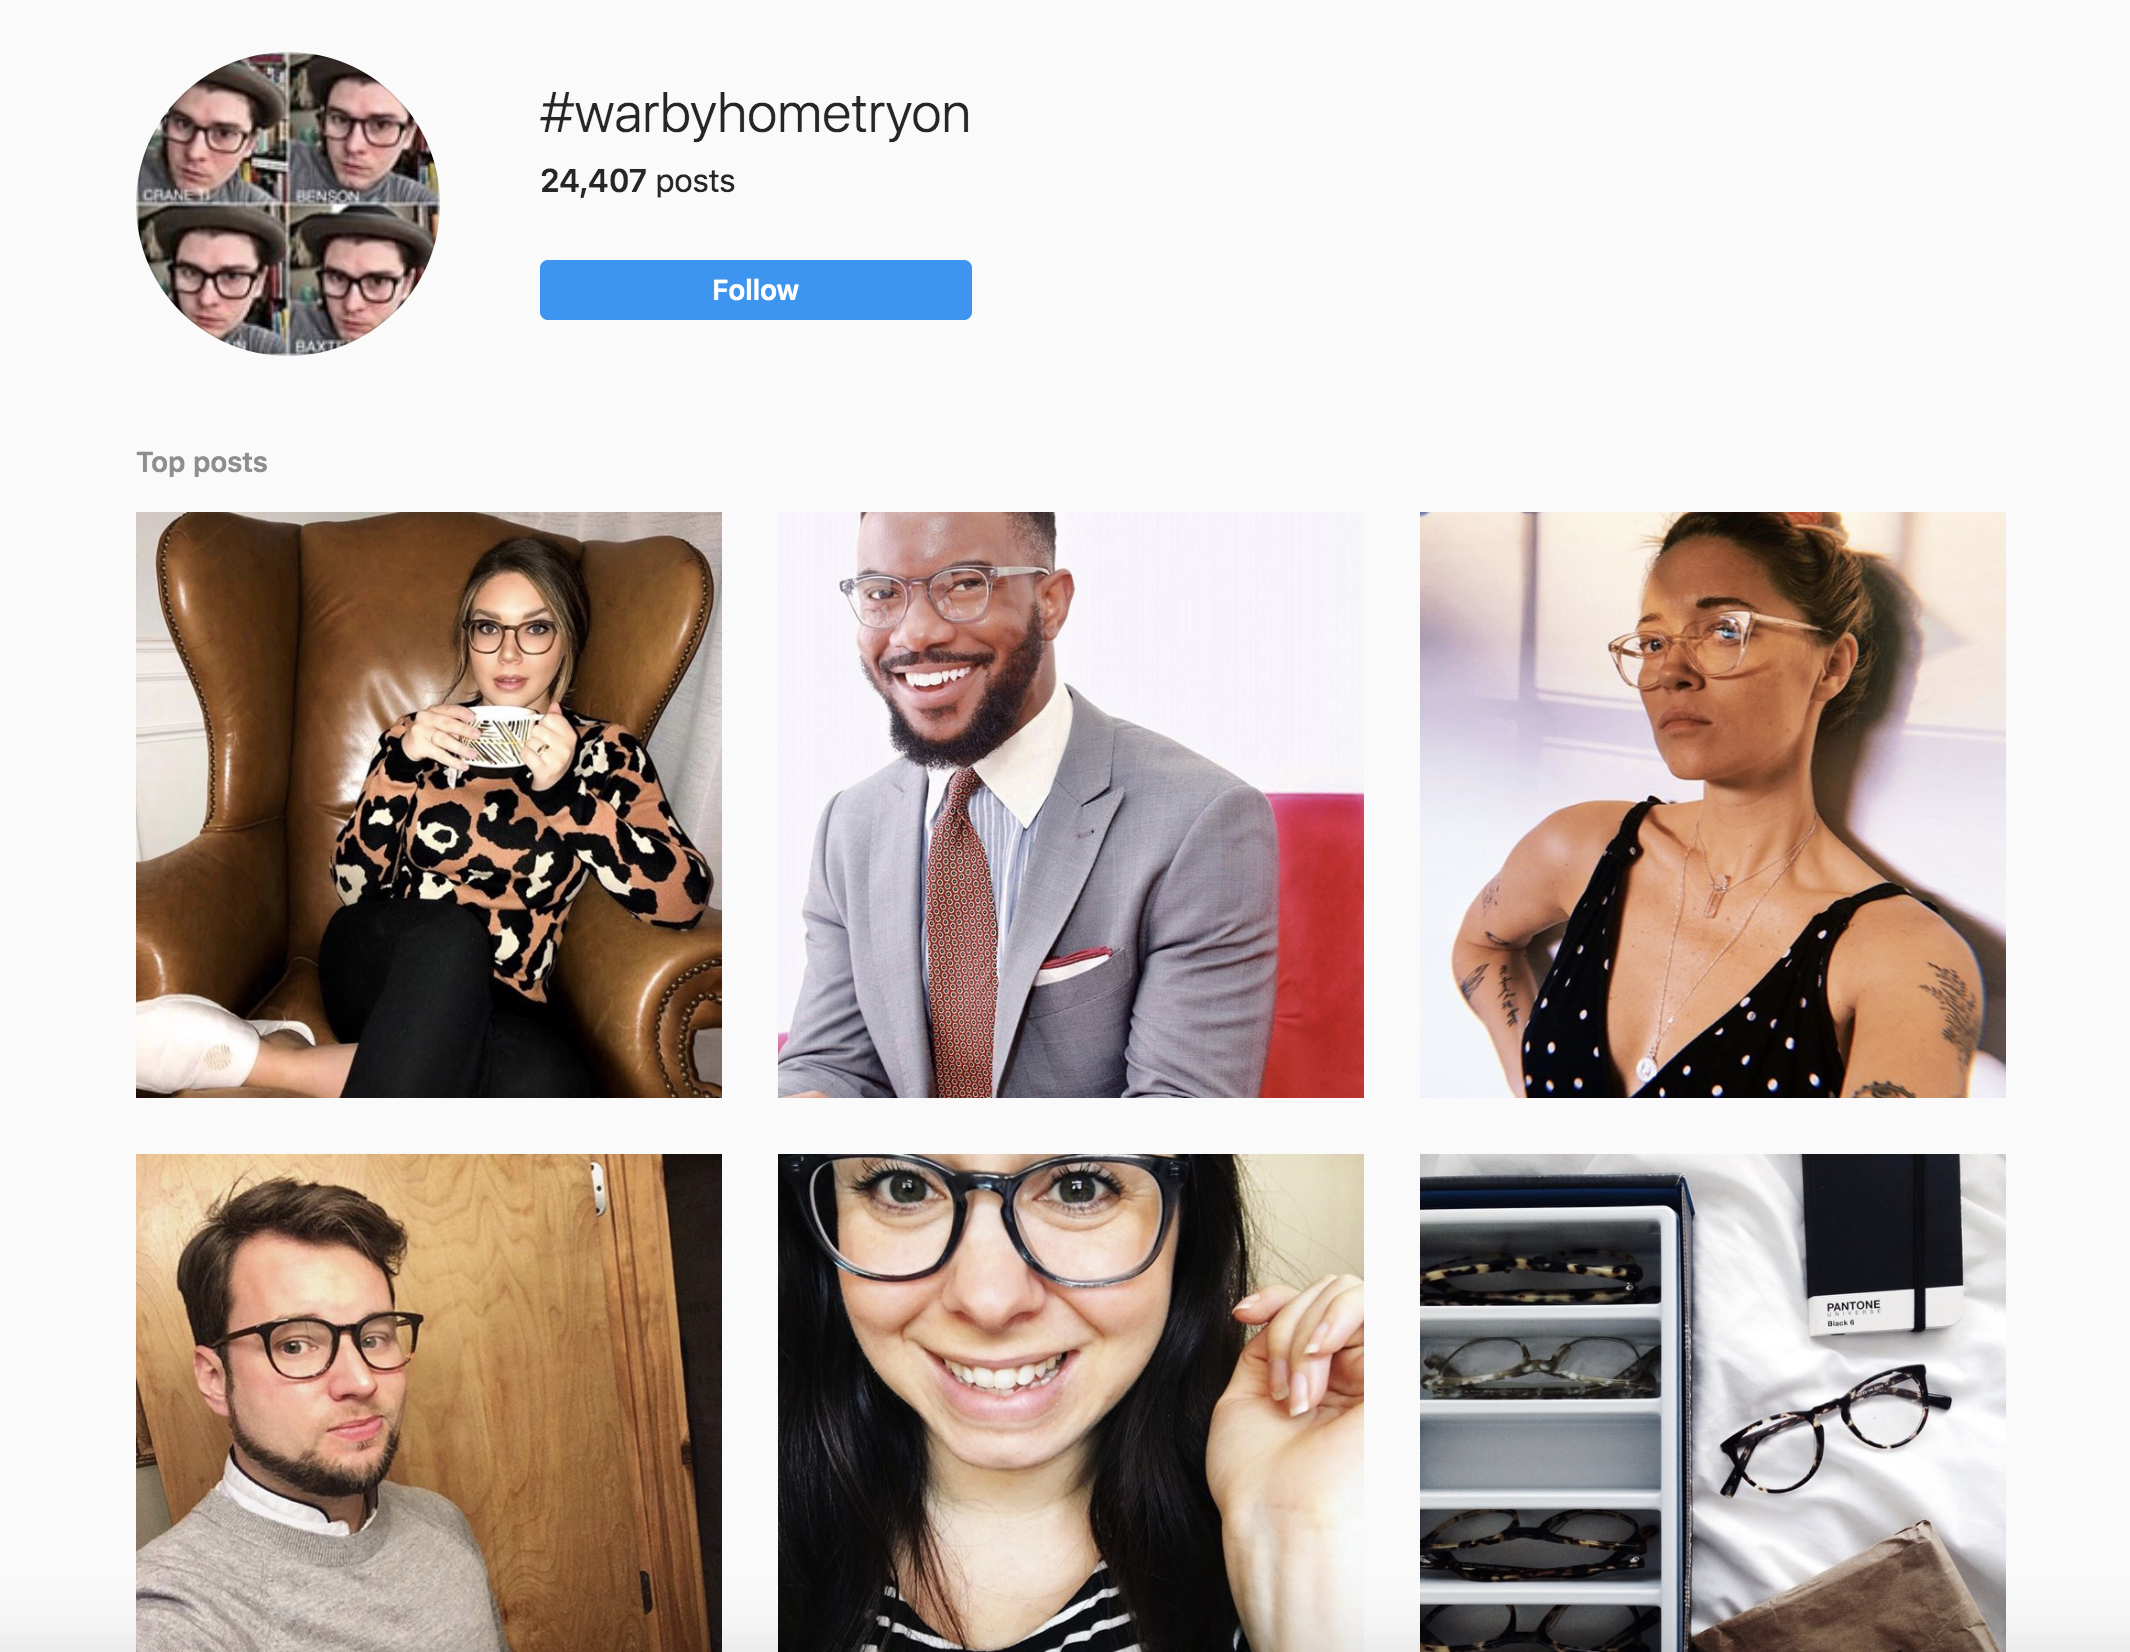 Warby Parker Home Try On Instagram screenshot